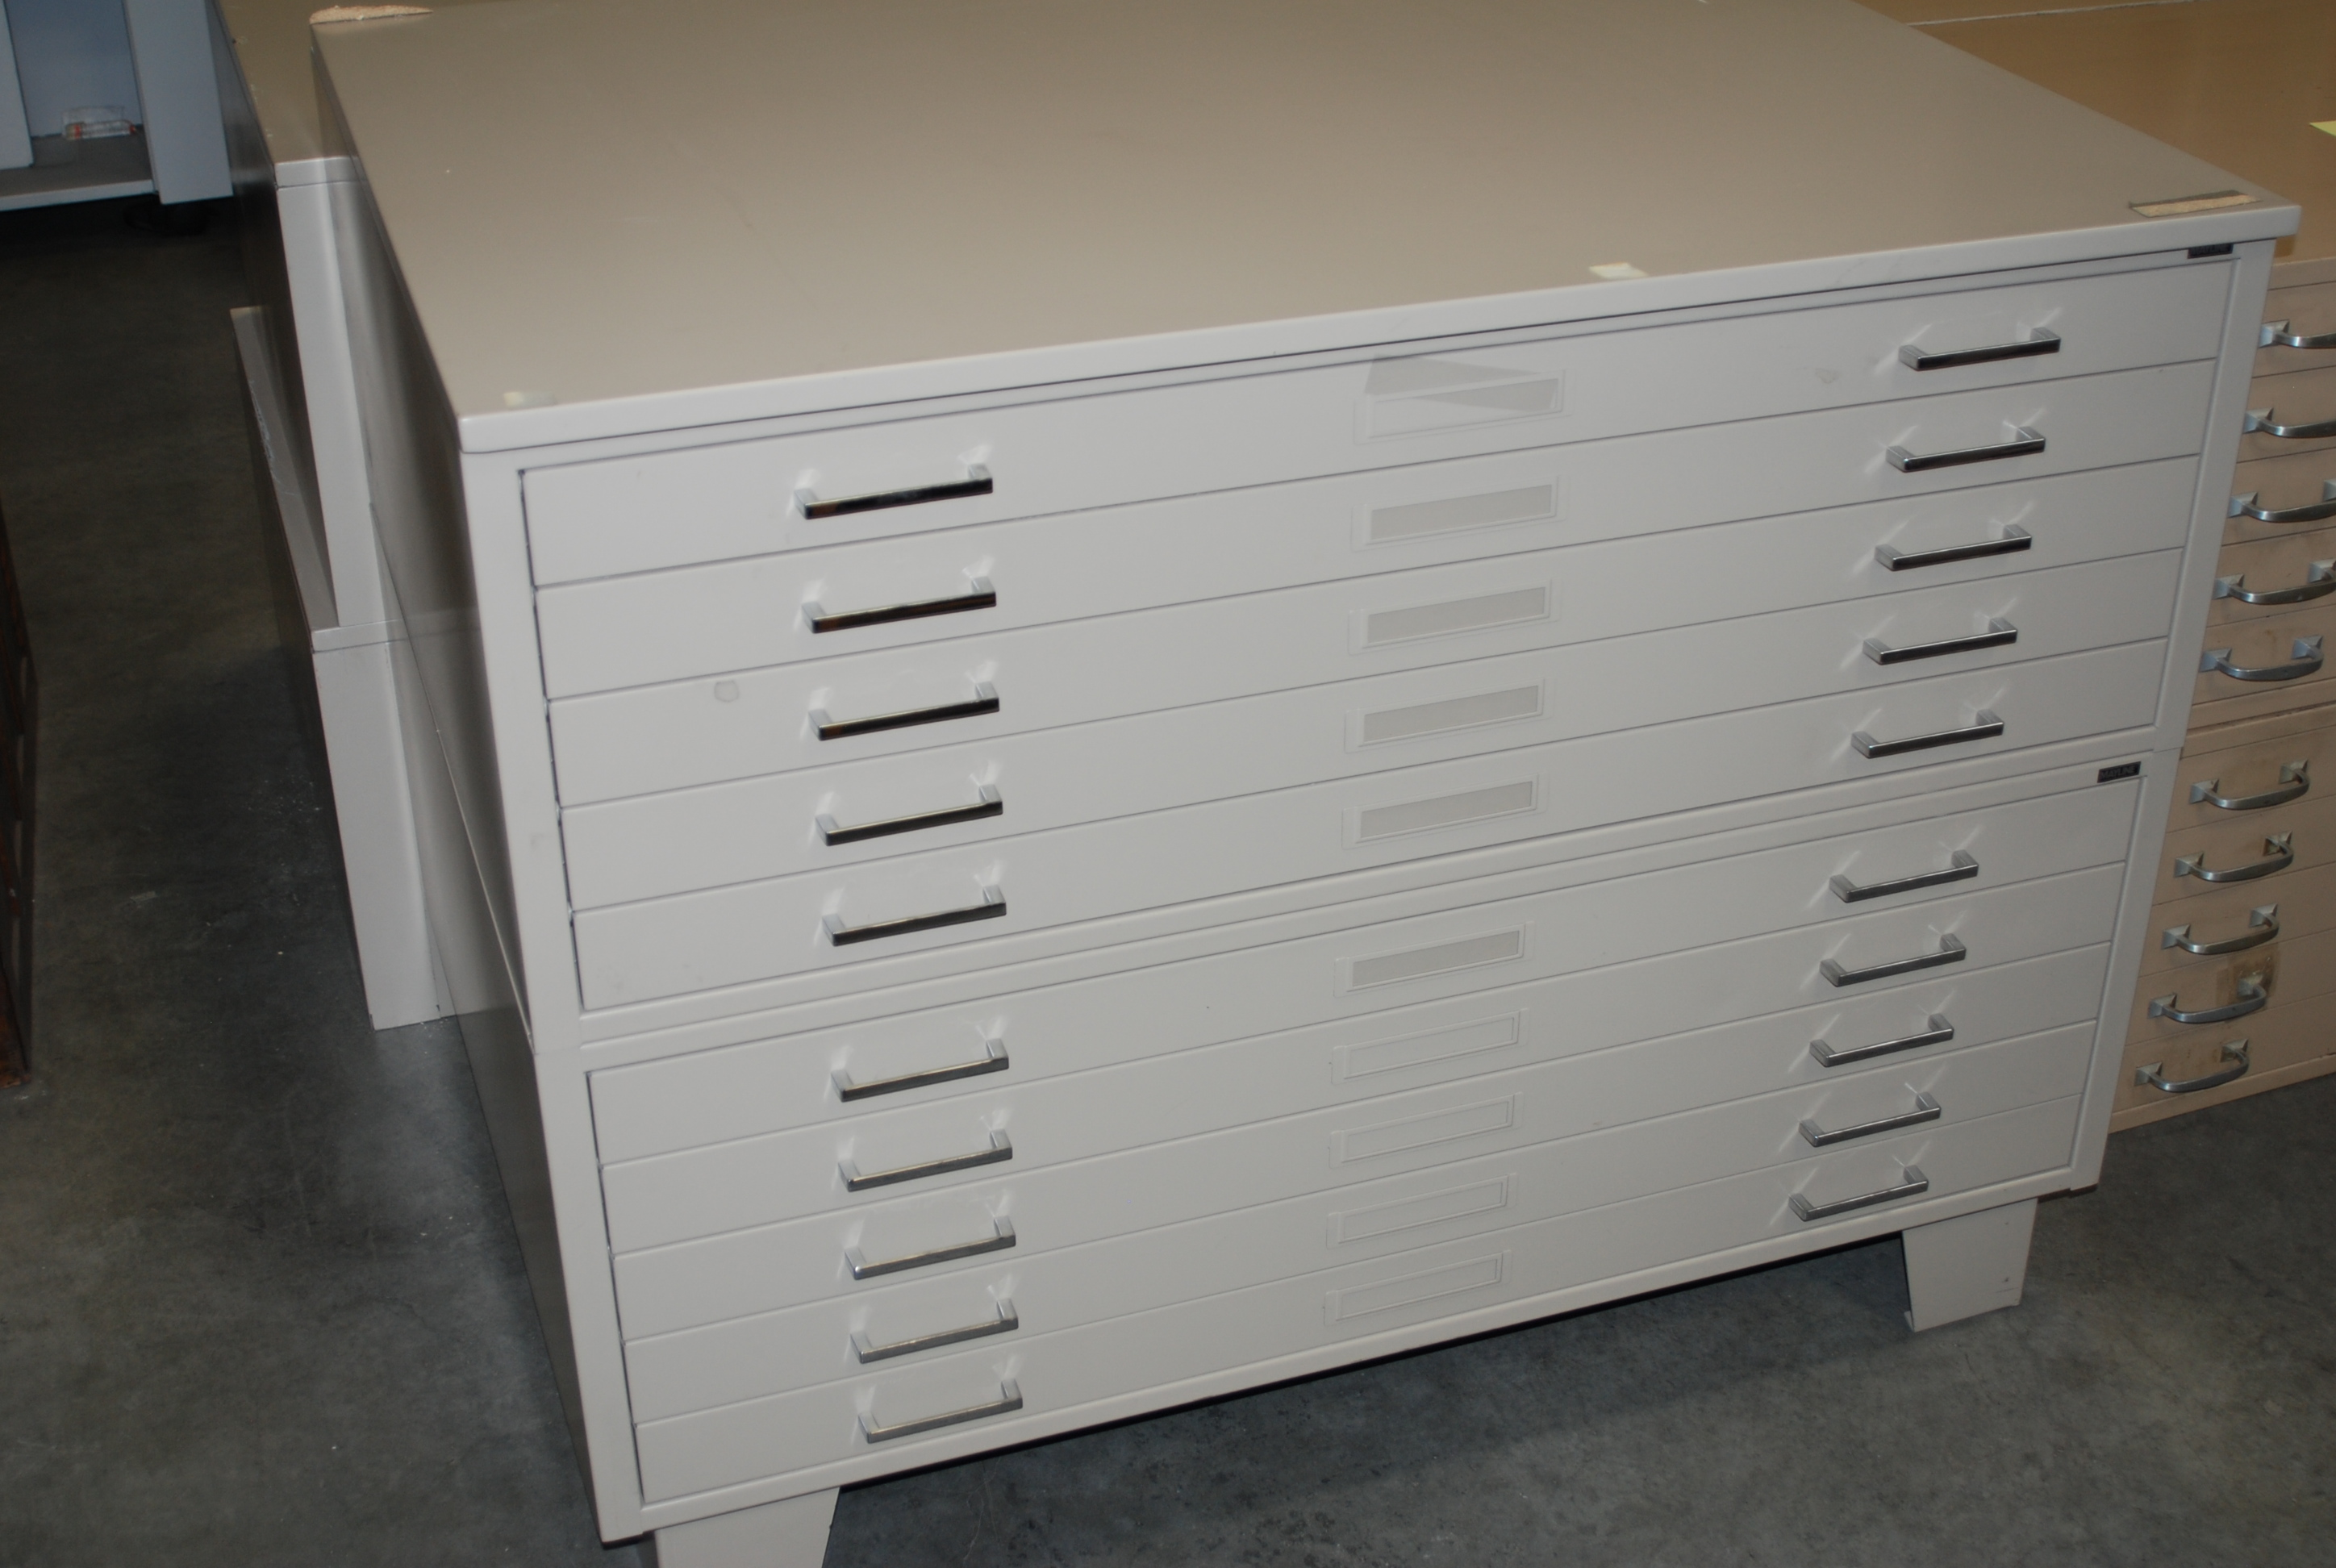 Used flat files roll files plan racks hoppers drafting furniture set of 2 used mayline flat files with base must be sold as a pair drawers hold up to 30 x 42 drawings files are in excellent condition malvernweather Choice Image